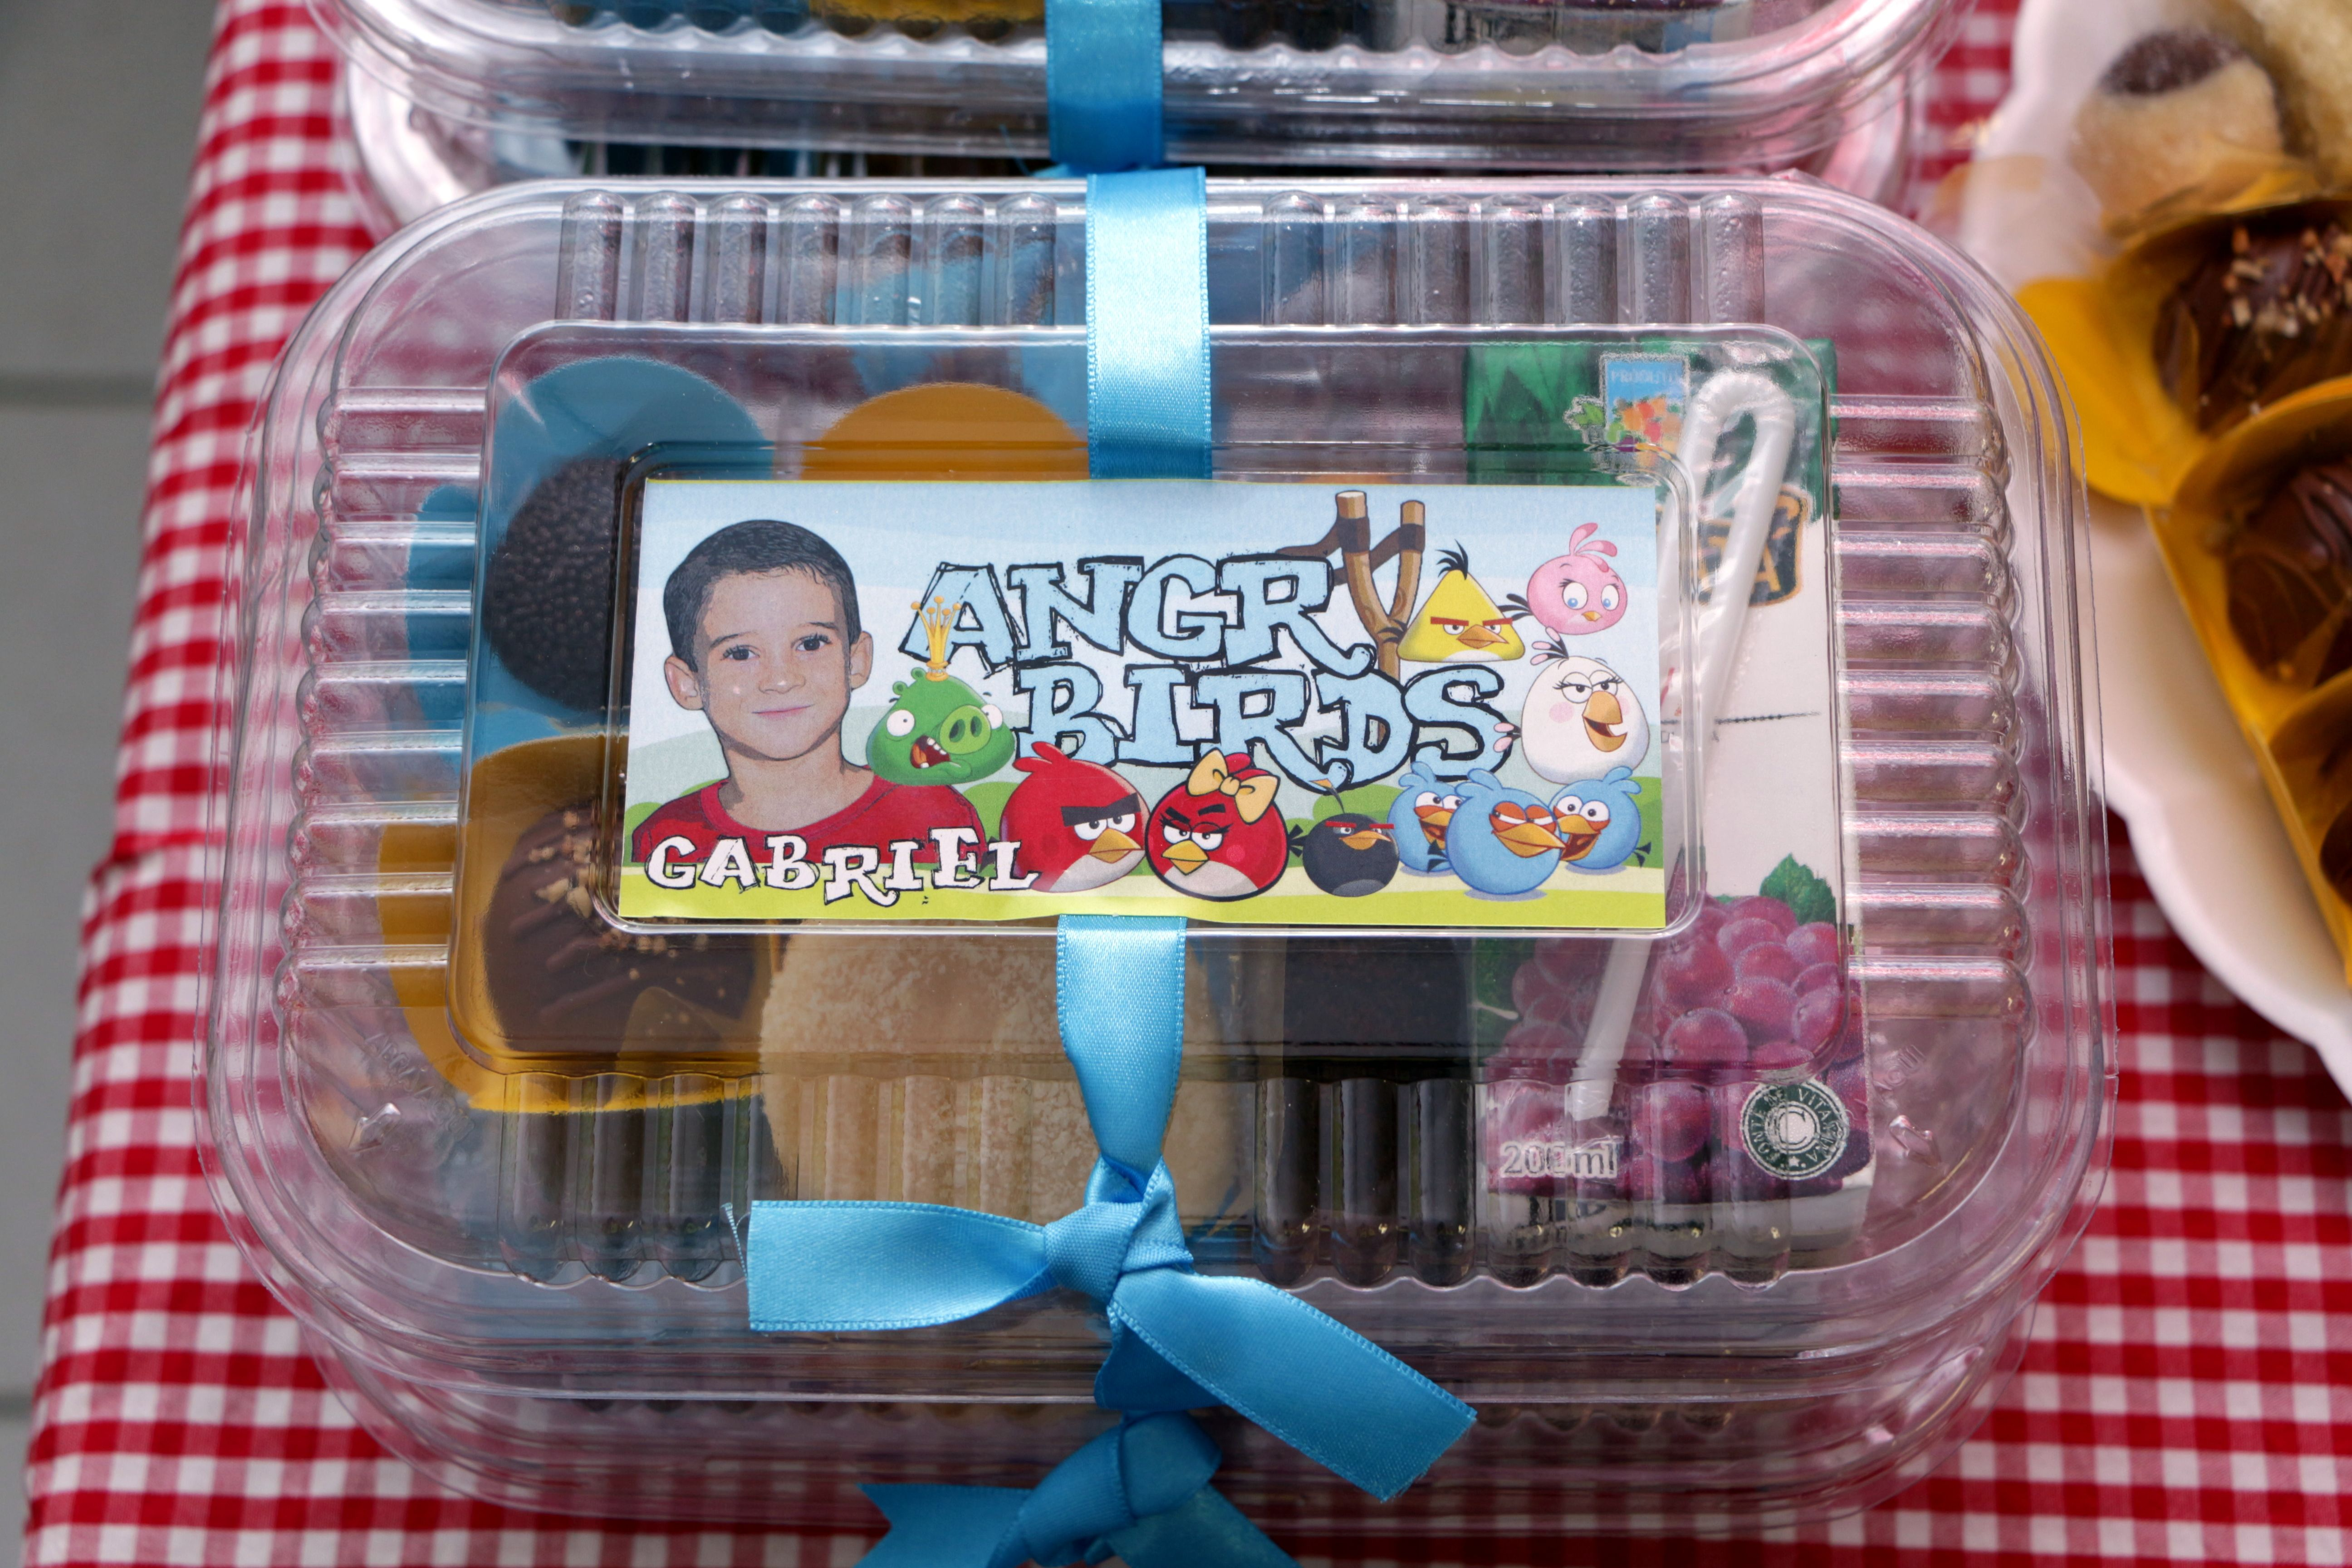 Festa Angry Birds na Escola - Kit Escola - Angry Birds Party in the School